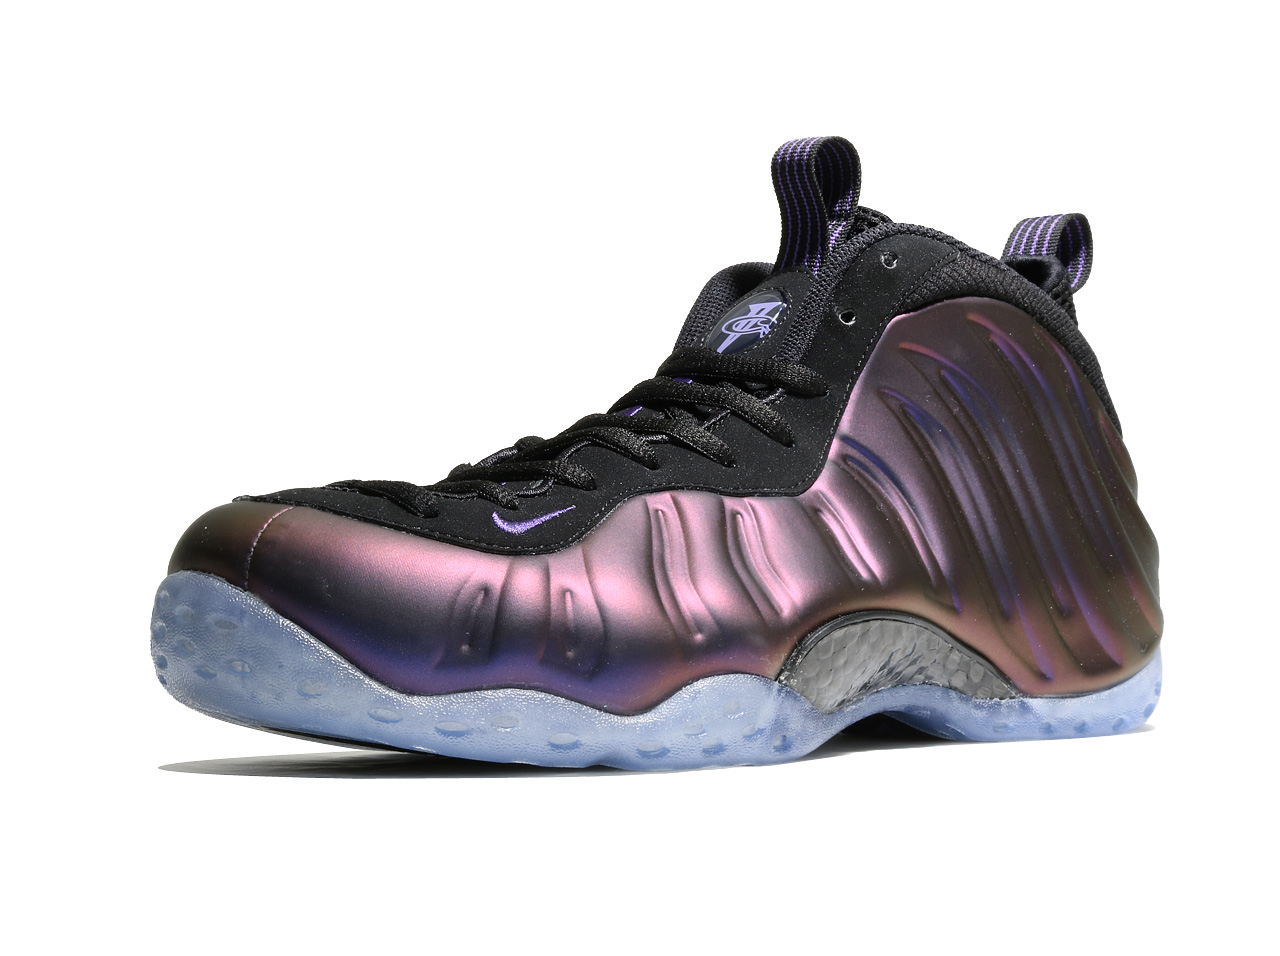 nike_air_foamposite_one_314996_008